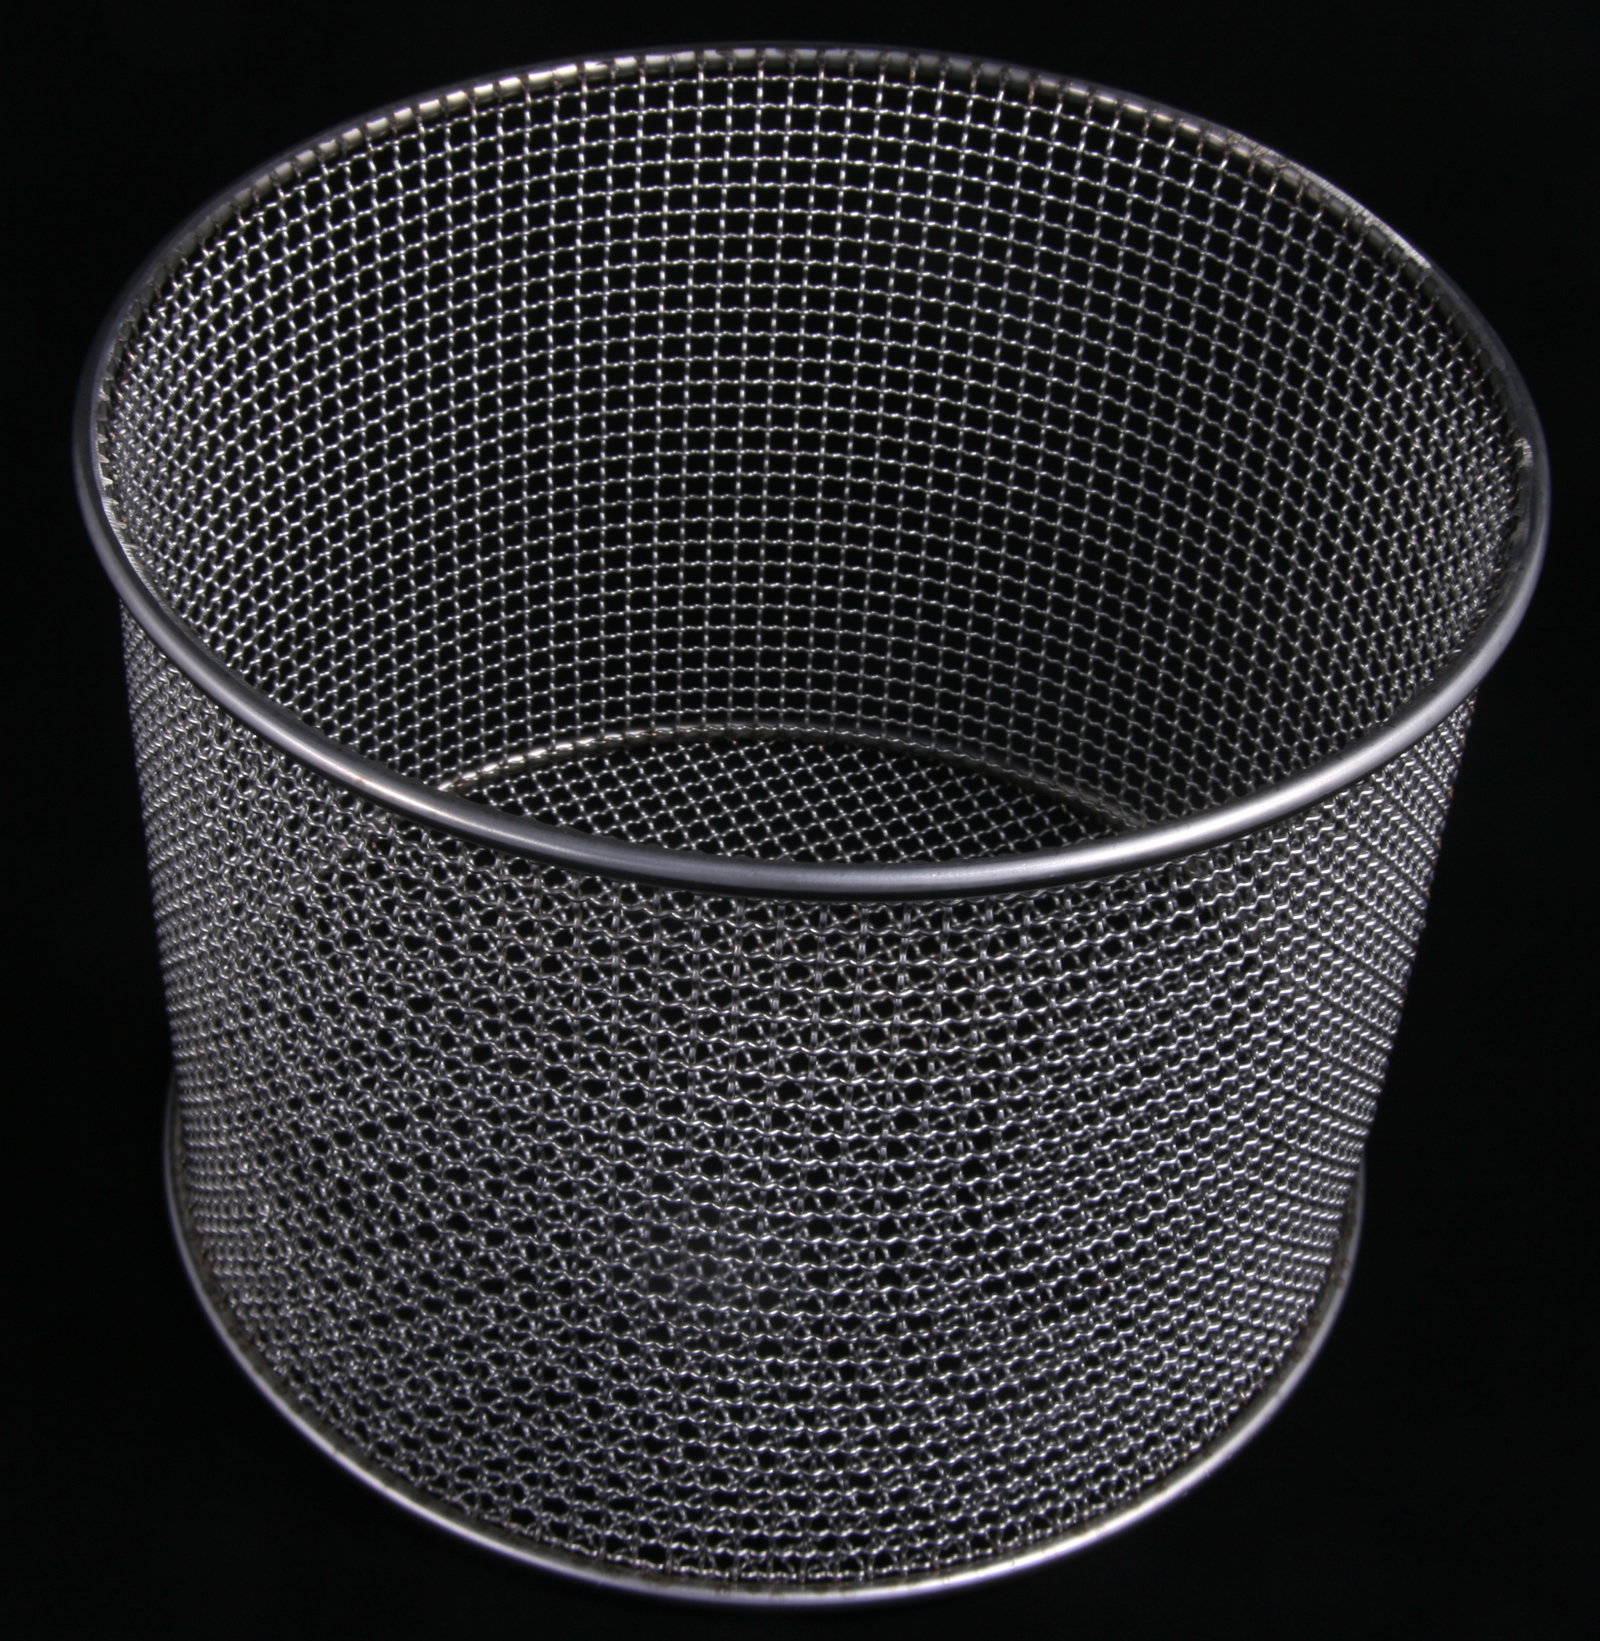 Buy Round Basket At Inoxia Ltd